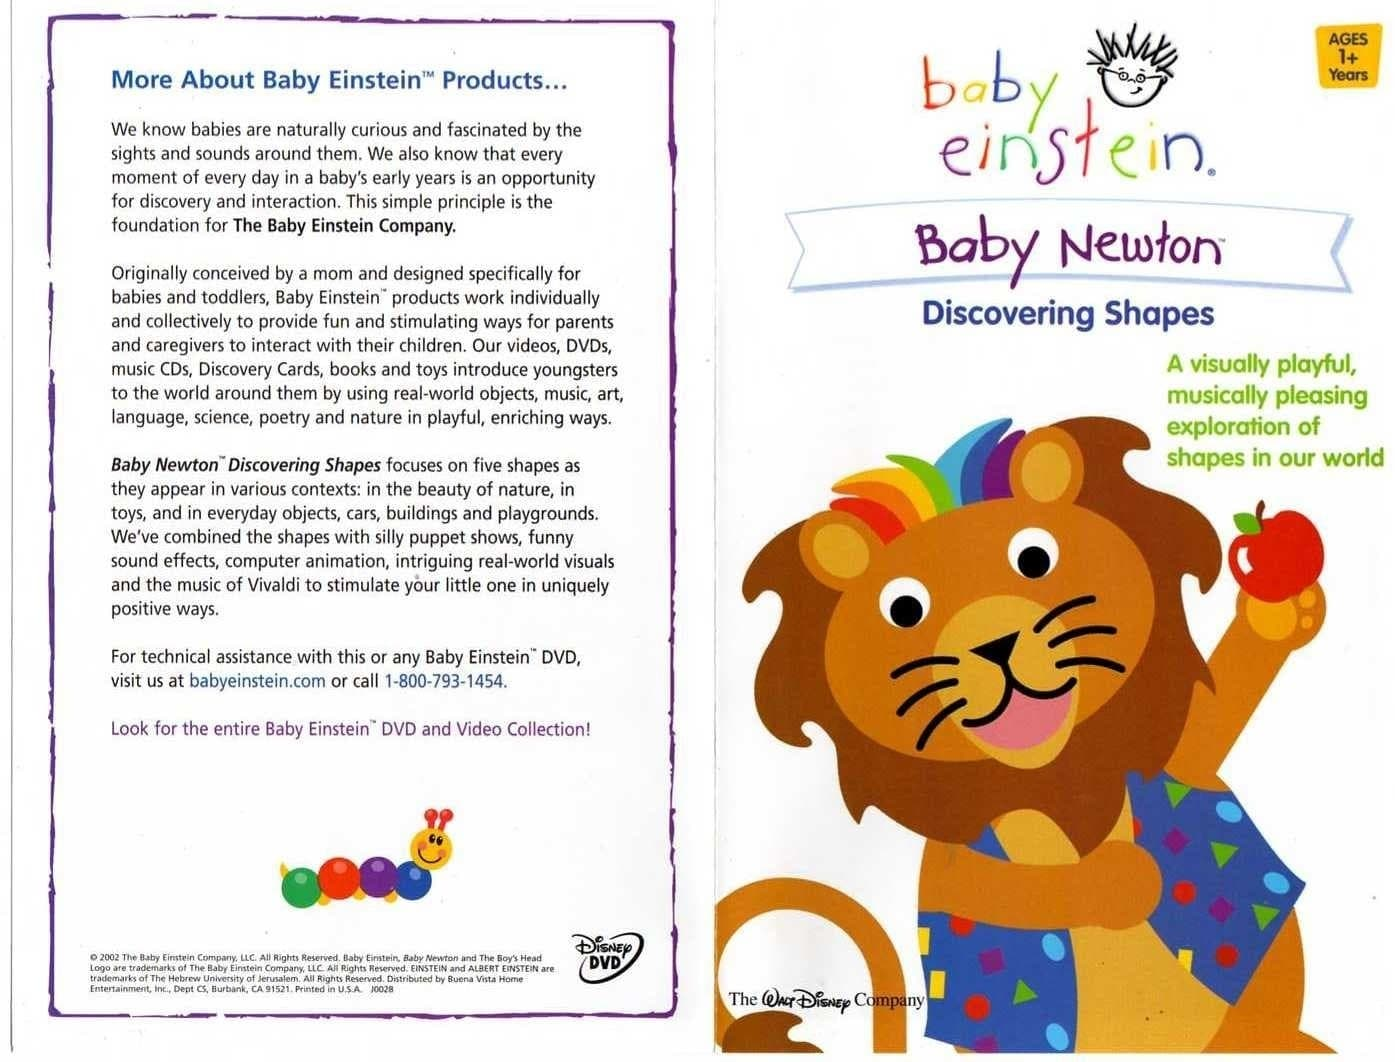 Baby Einstein Baby Newton 2002 Posters The Movie